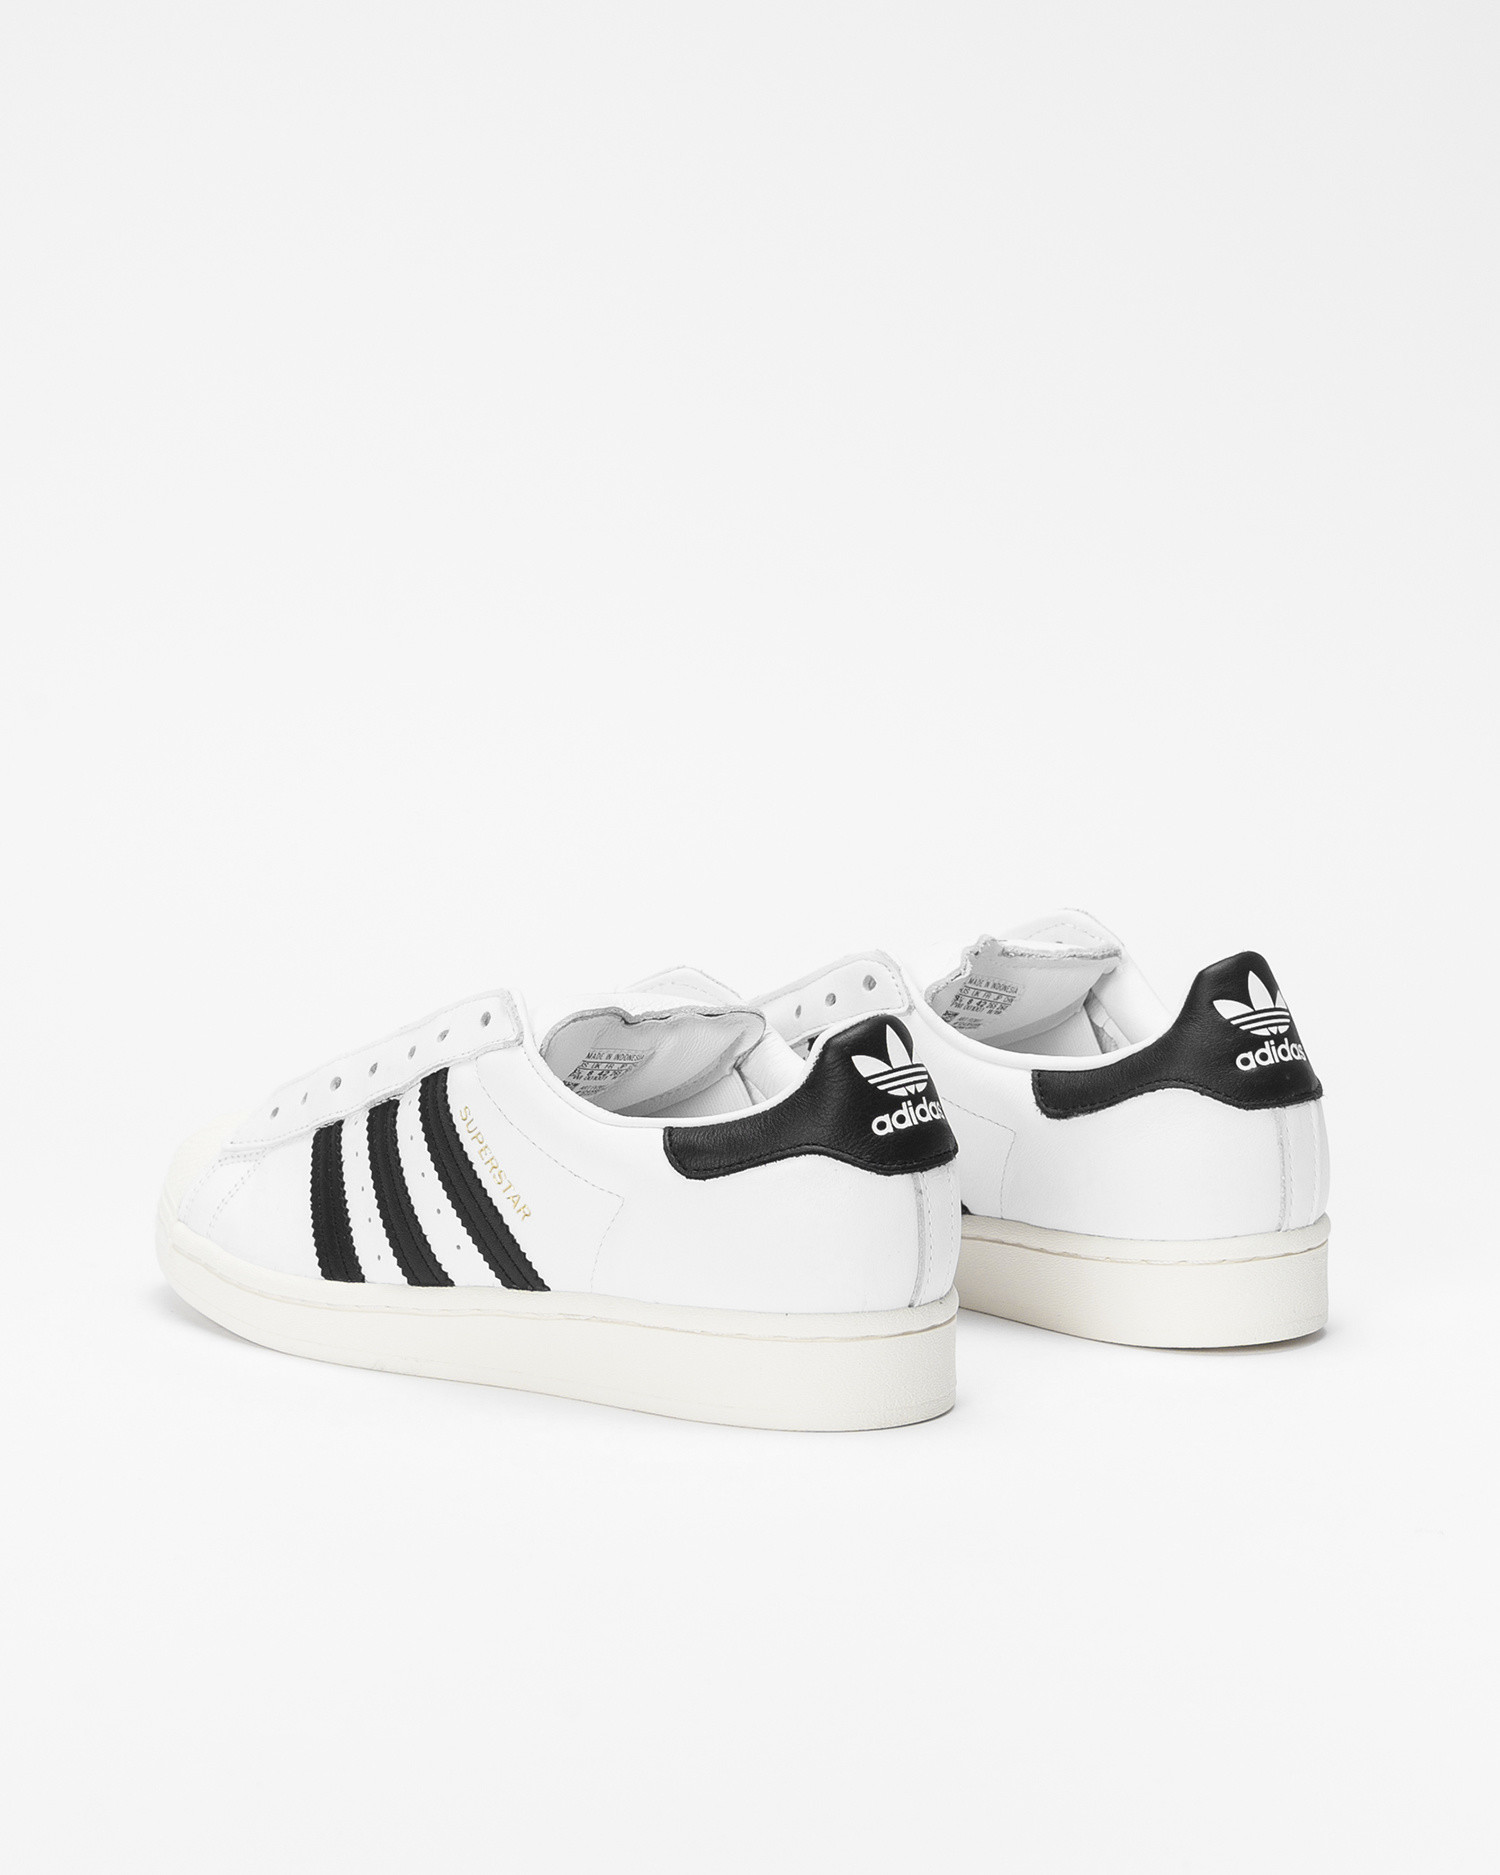 adidas Superstar laceless white/black/white